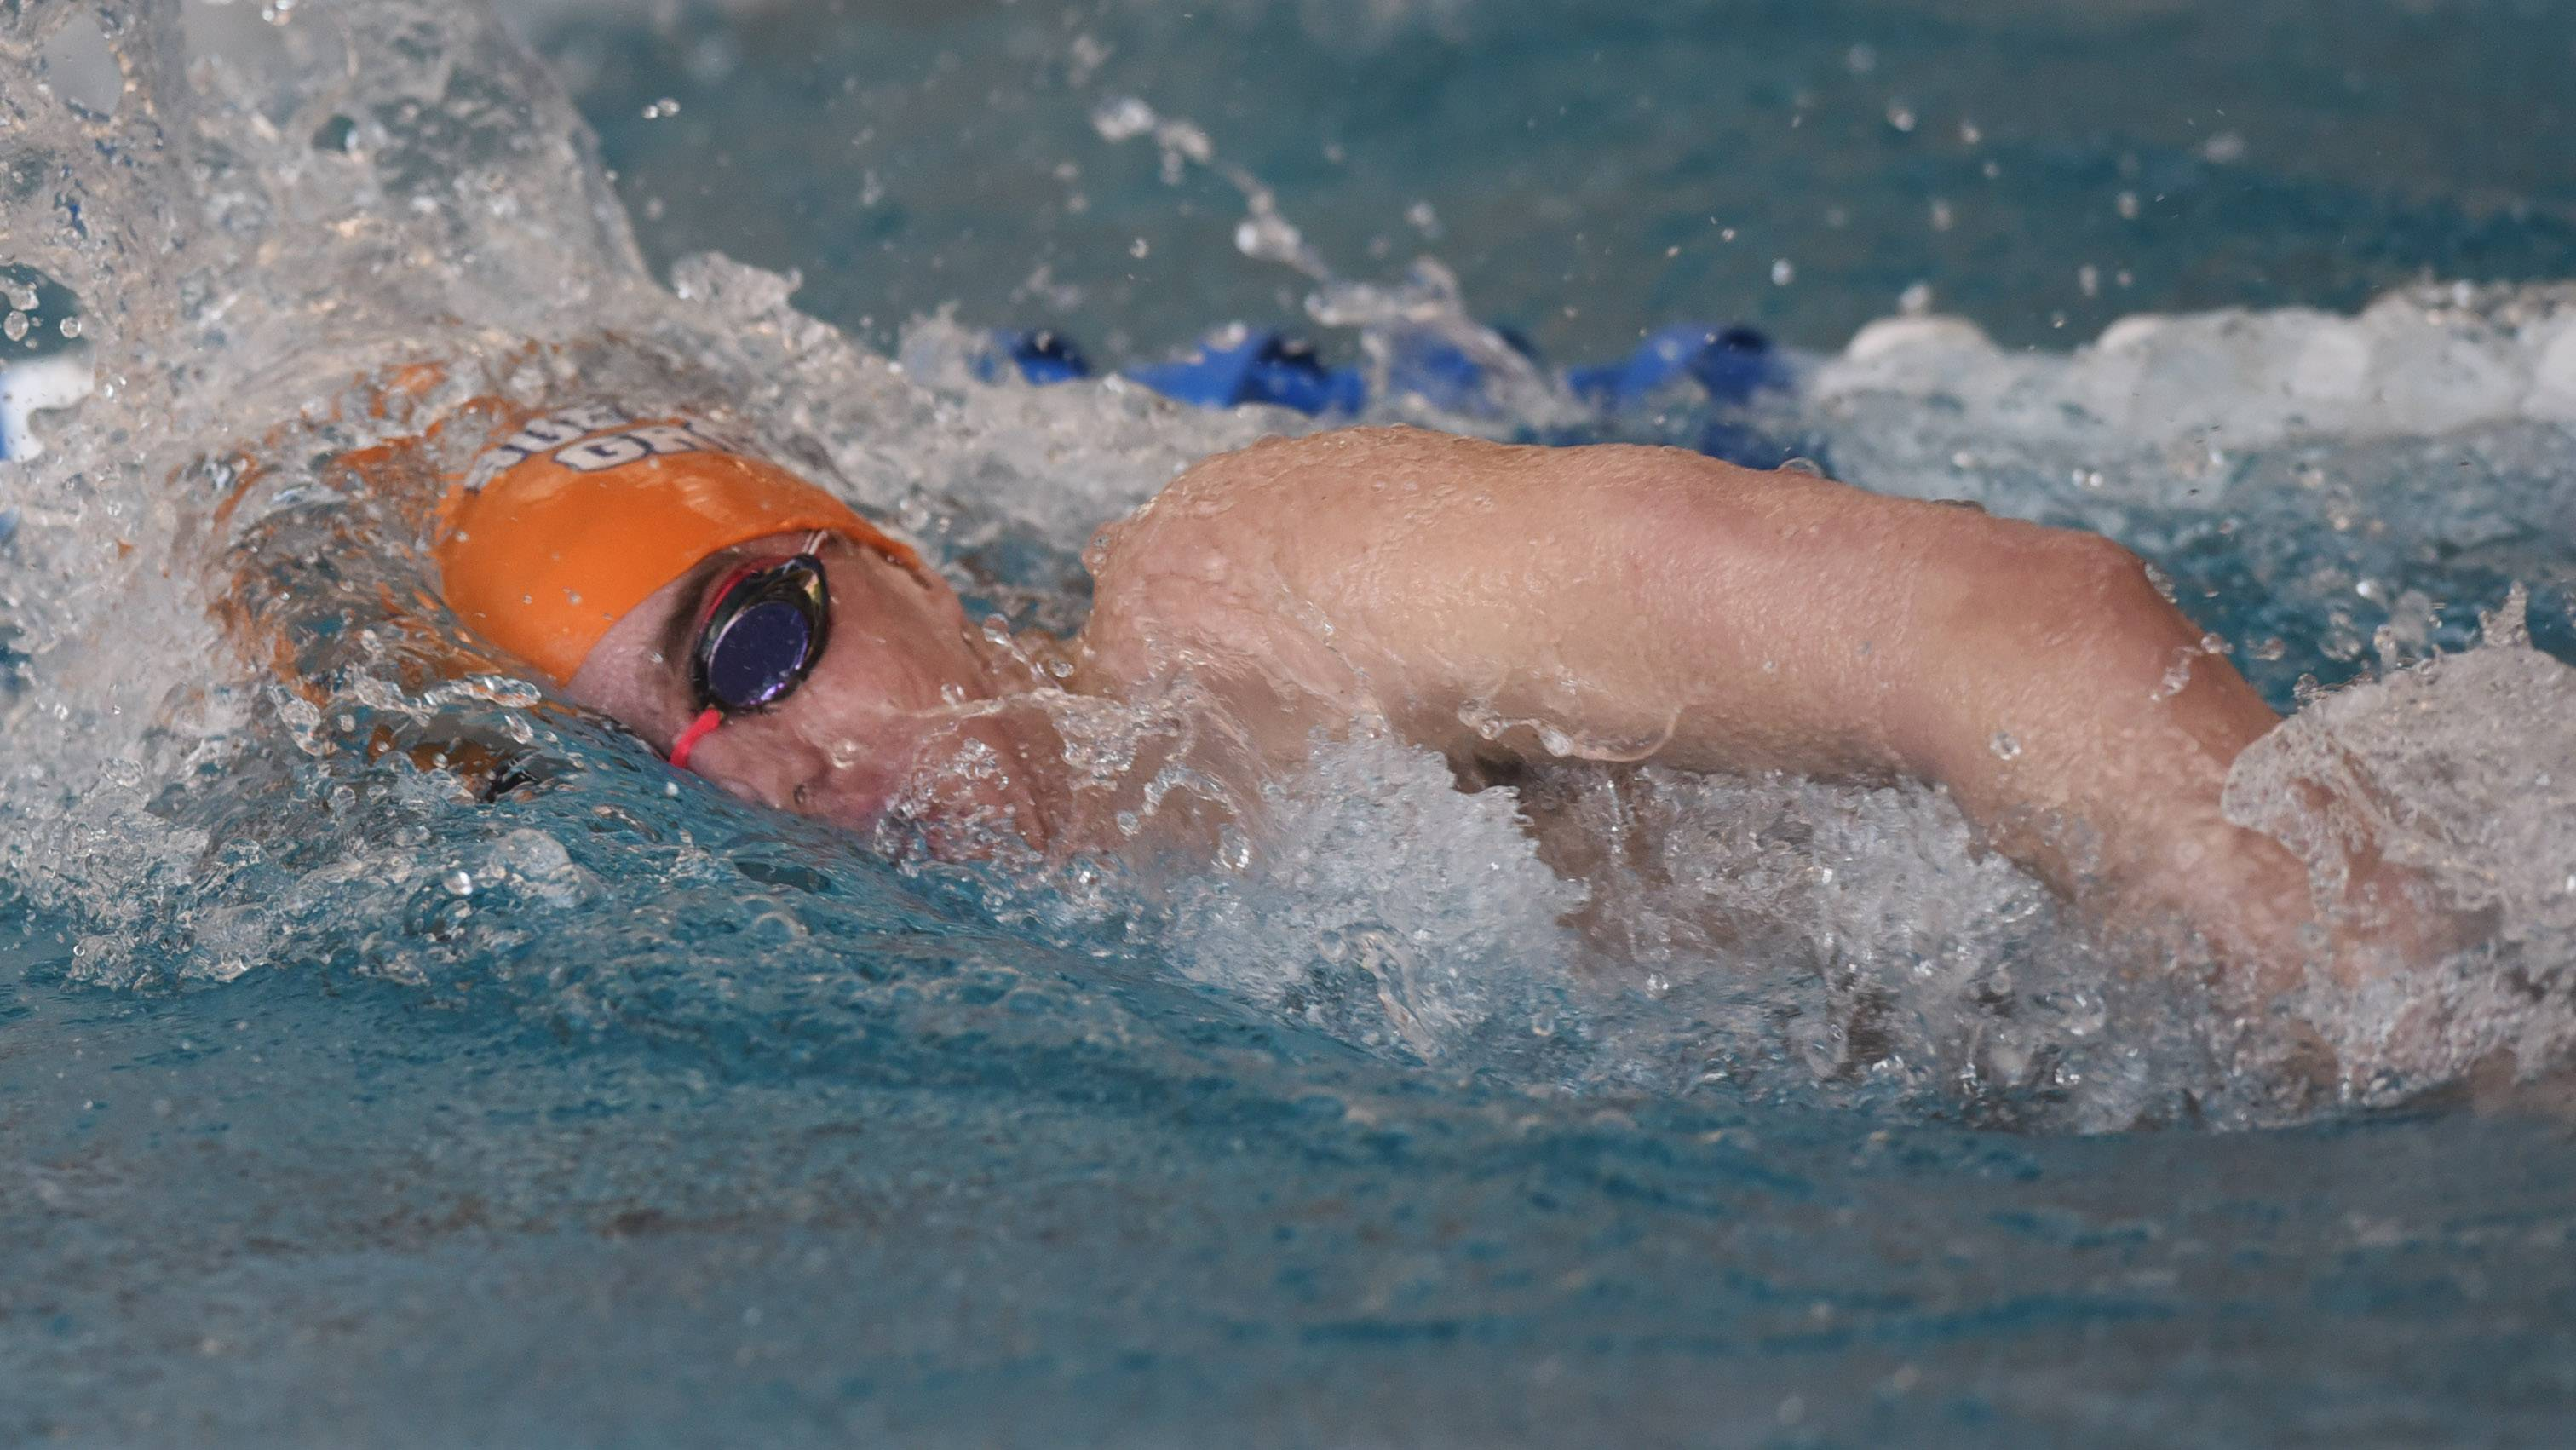 Buffalo Grove's Daniel Verdico swims the 200-yard freestyle during the Mid-Suburban League boys swimming meet at Prospect last weekend. He'll race in the 200 and 500 frees at Stevenson on Saturday.